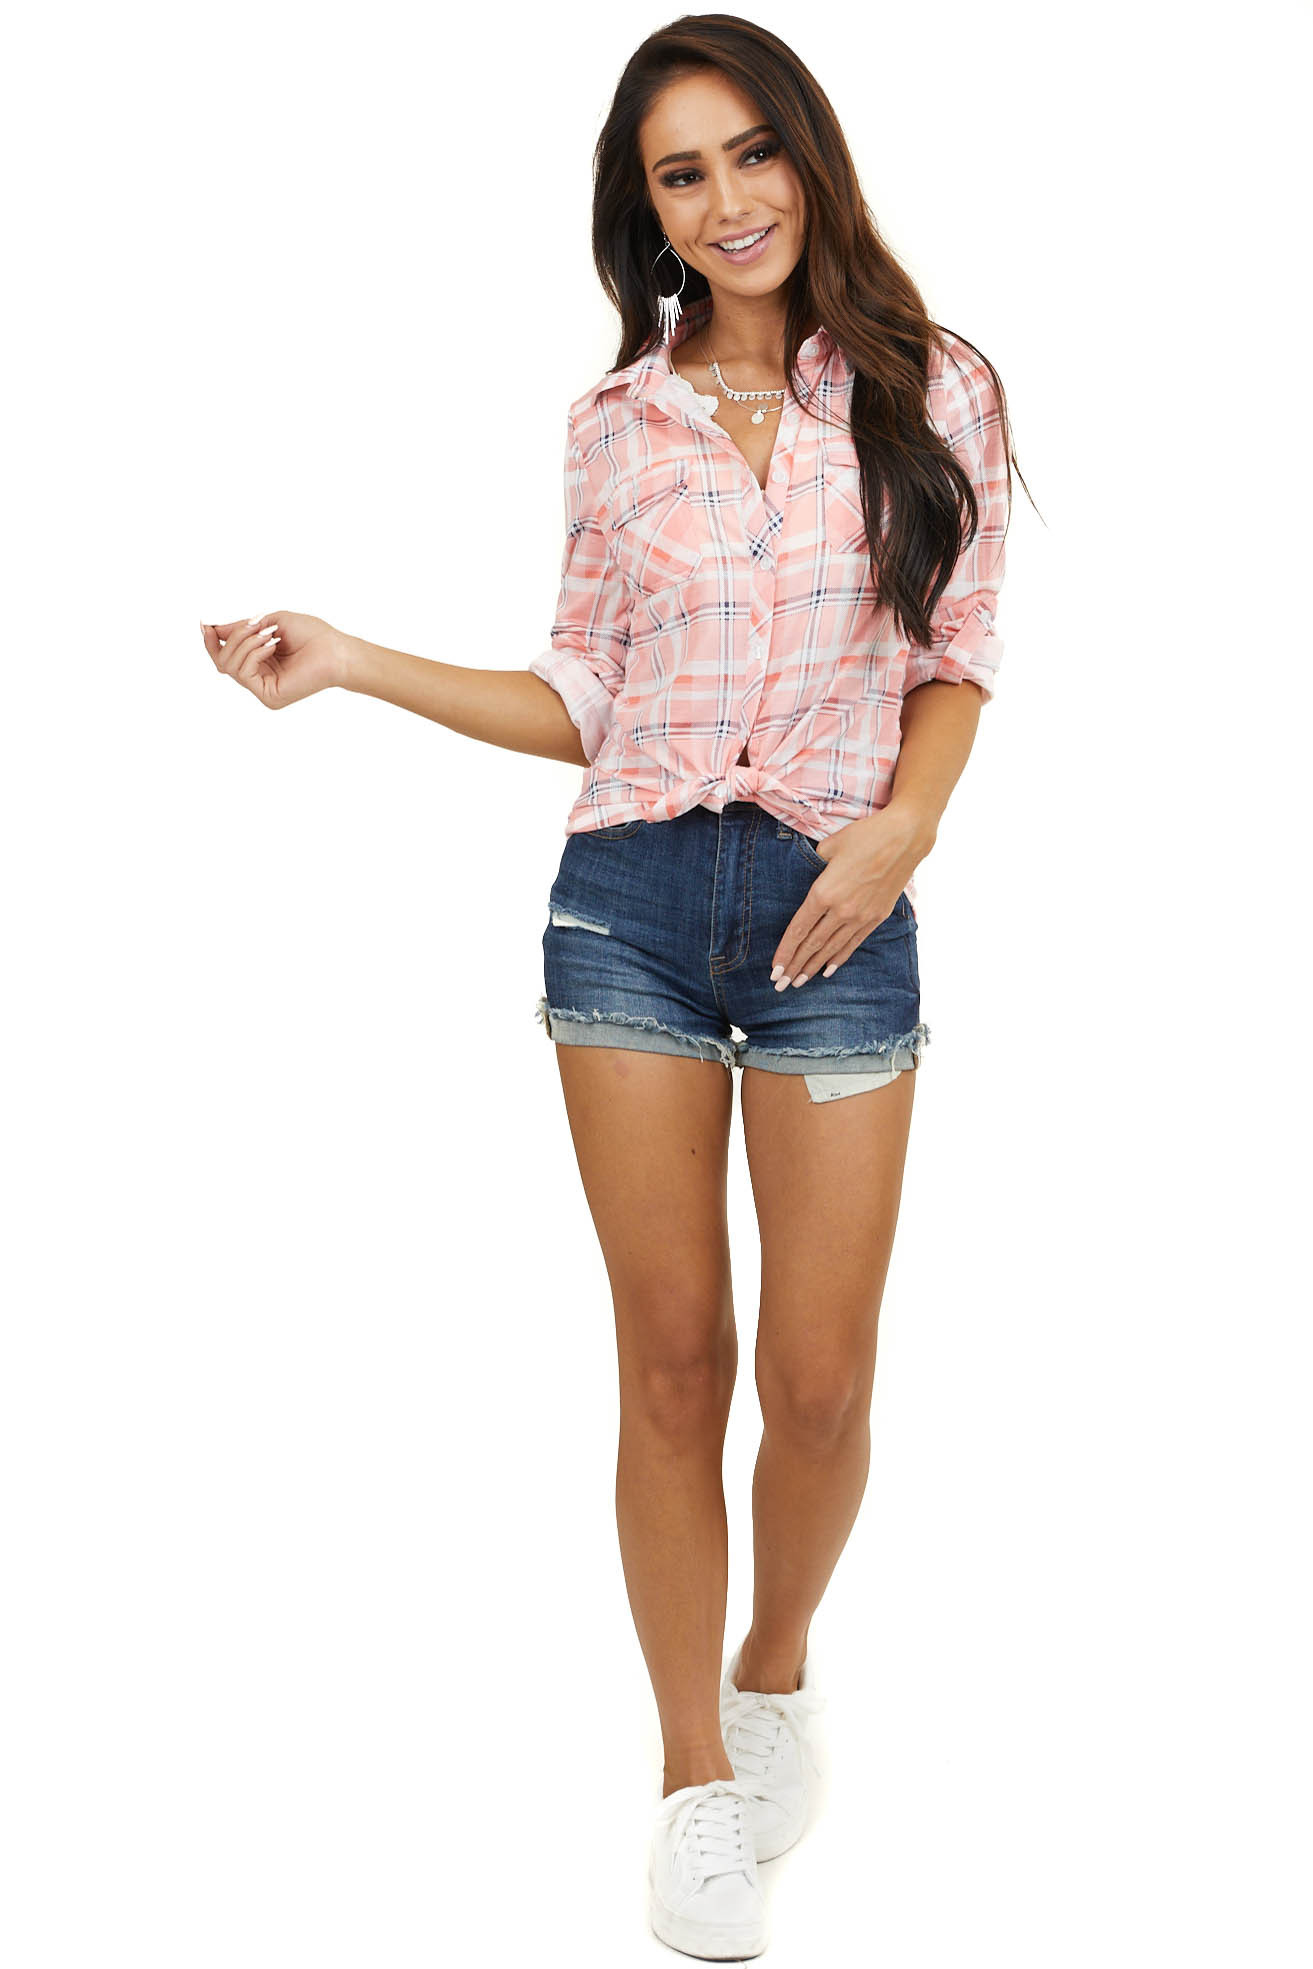 Bubblegum Pink Plaid Button Up Top with Chest Pockets